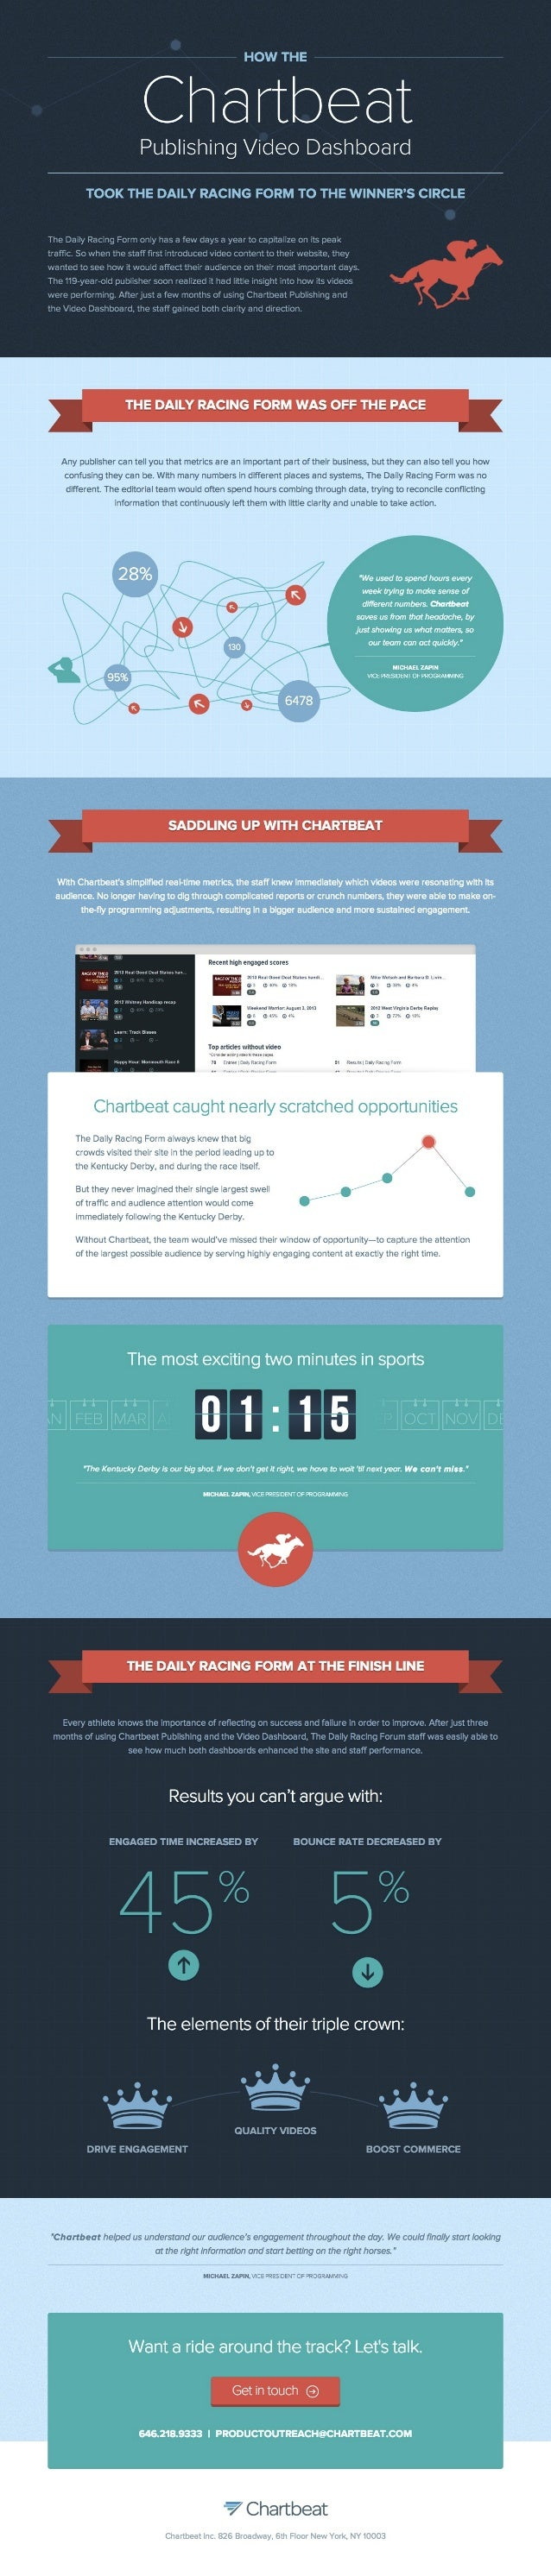 A Case Study: How the Daily Racing Form uses the Chartbeat Publishing Video Dashboard